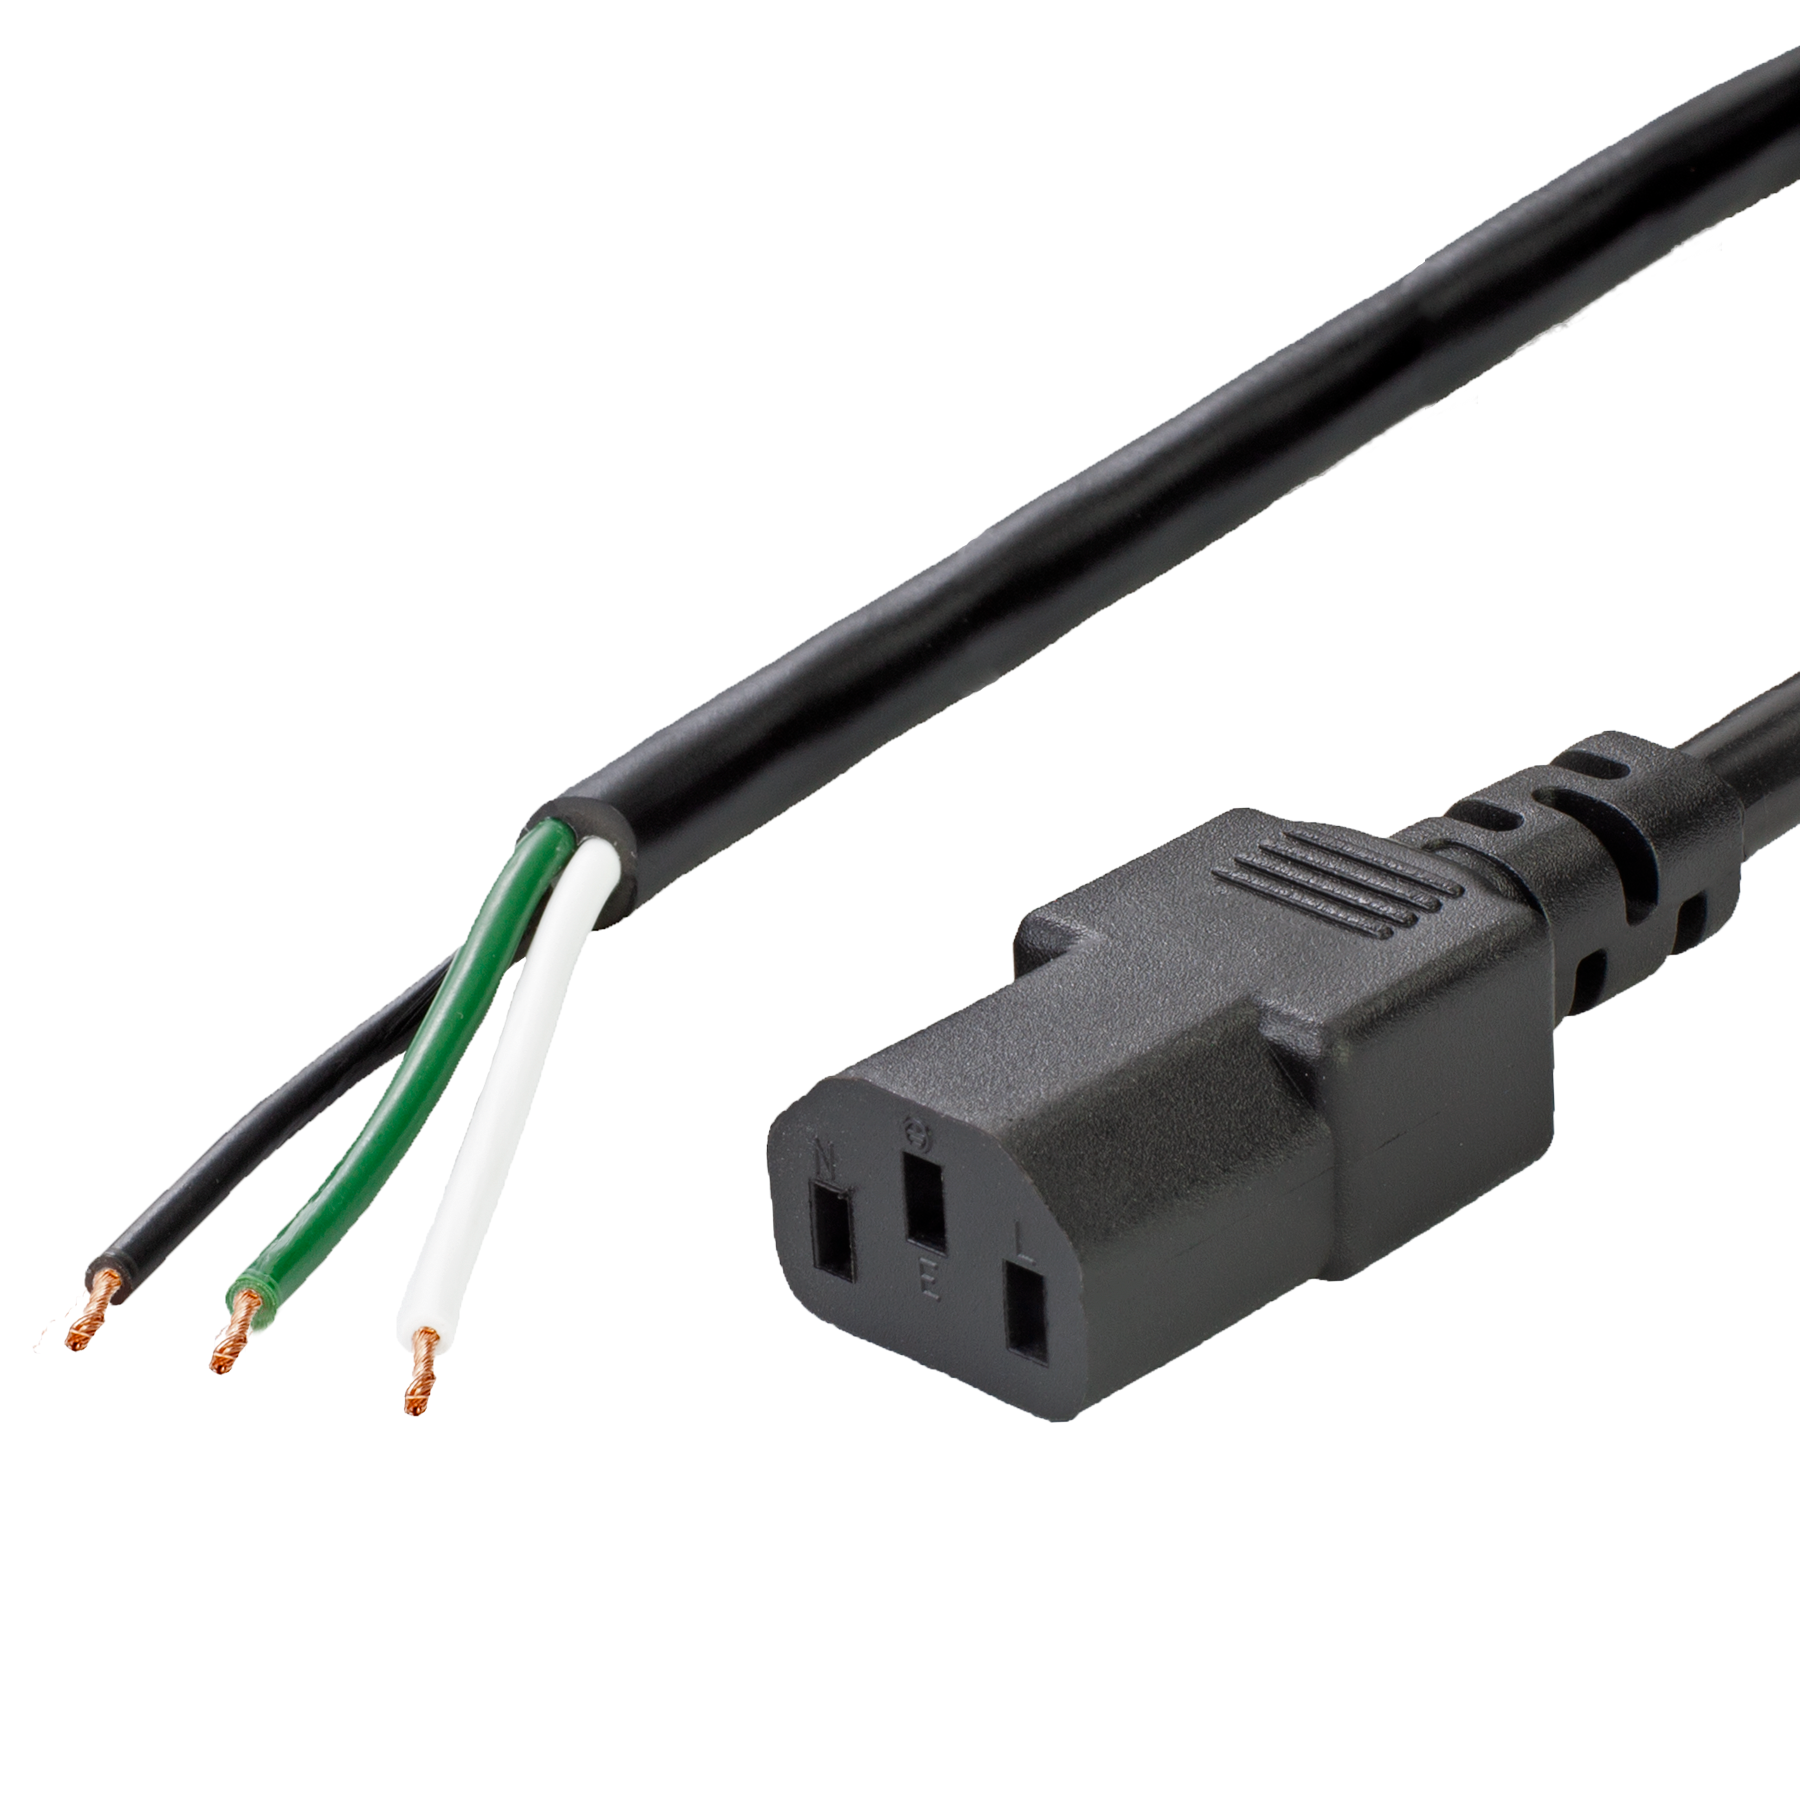 C13//C14 4.9ft 18AWG Power Extension Cord Cable w//3 Conductor PC//Mon IEC320